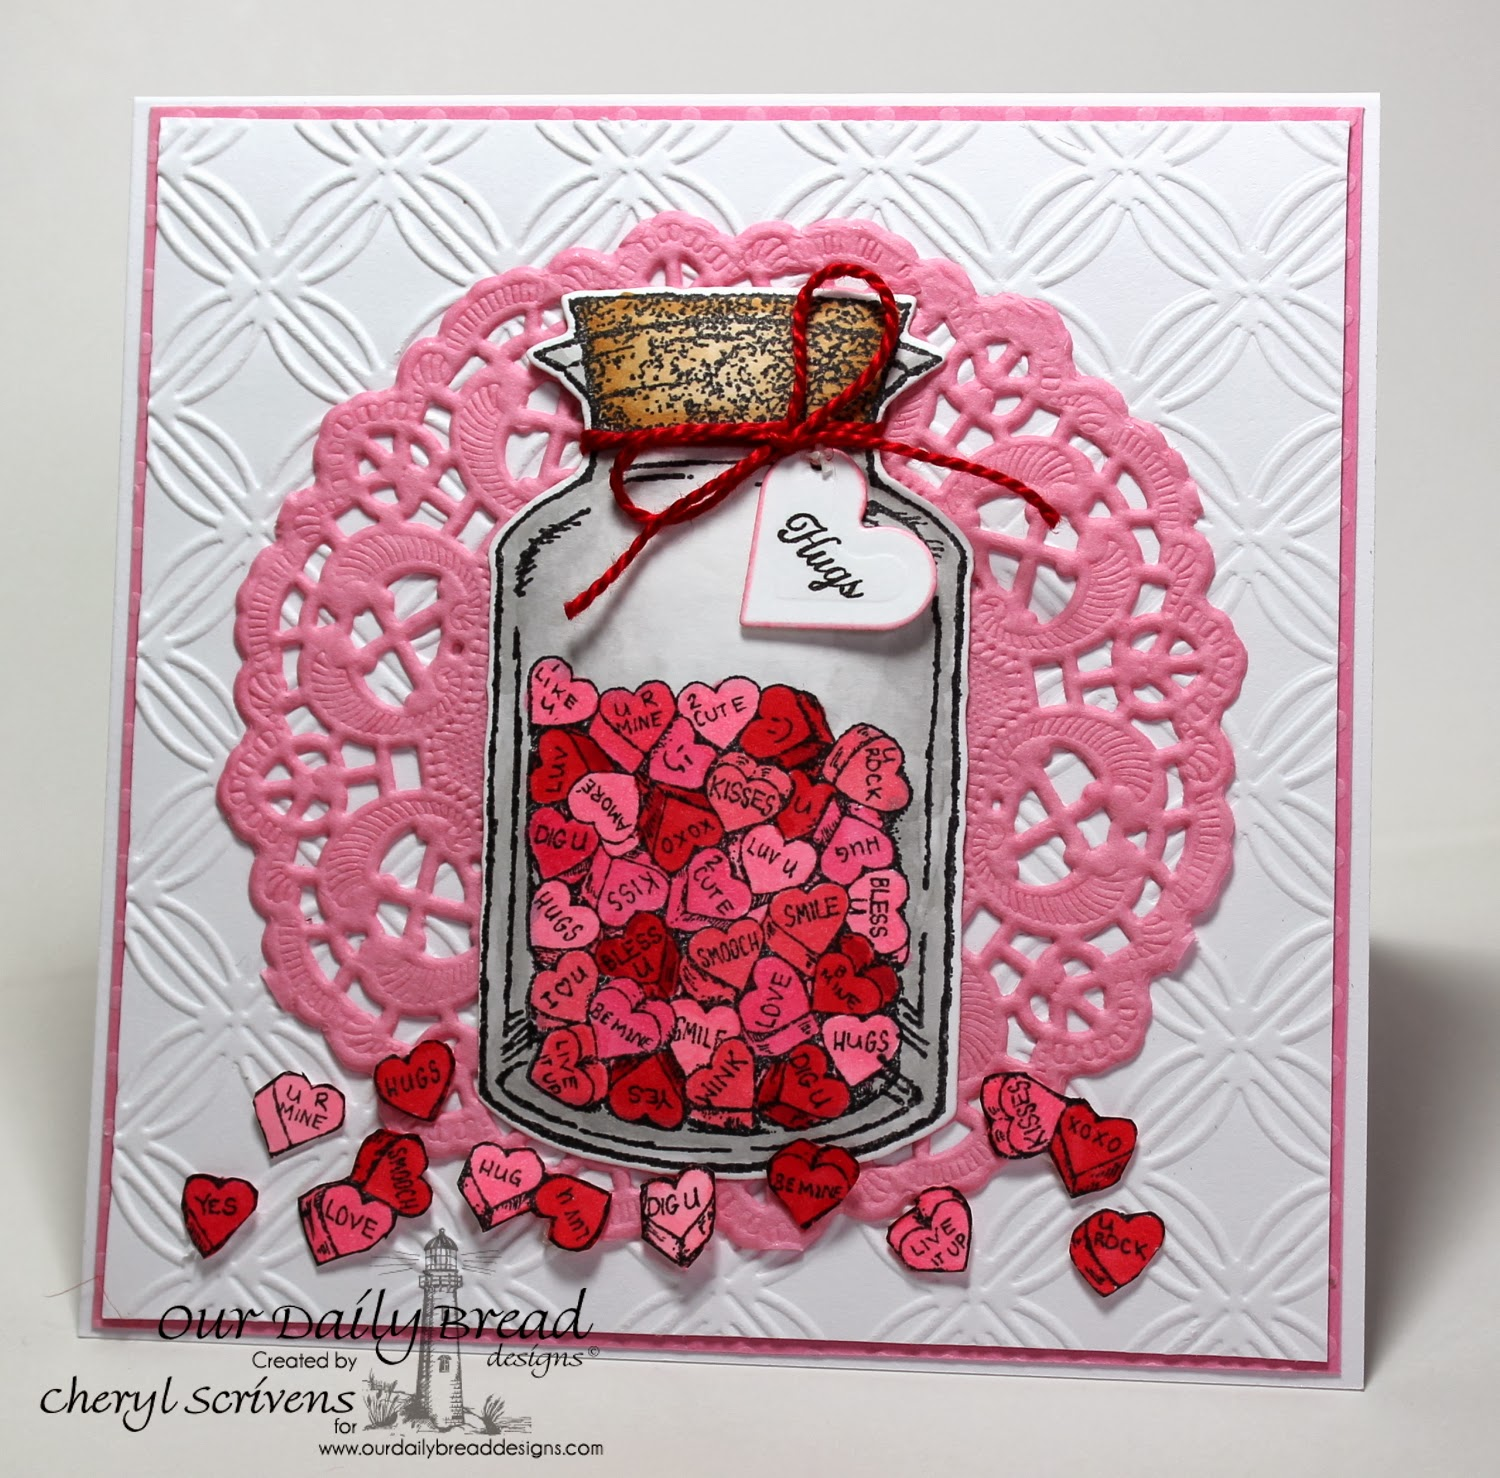 Our Daily Bread Designs, Apothecary Bottles, Canning Jar Fillers, Ornate Borders Sentiments, ODBD Custom Apothecary Bottles dies, CherylQuilts, Shining the Light Challenge, Designed by Cheryl Scrivens